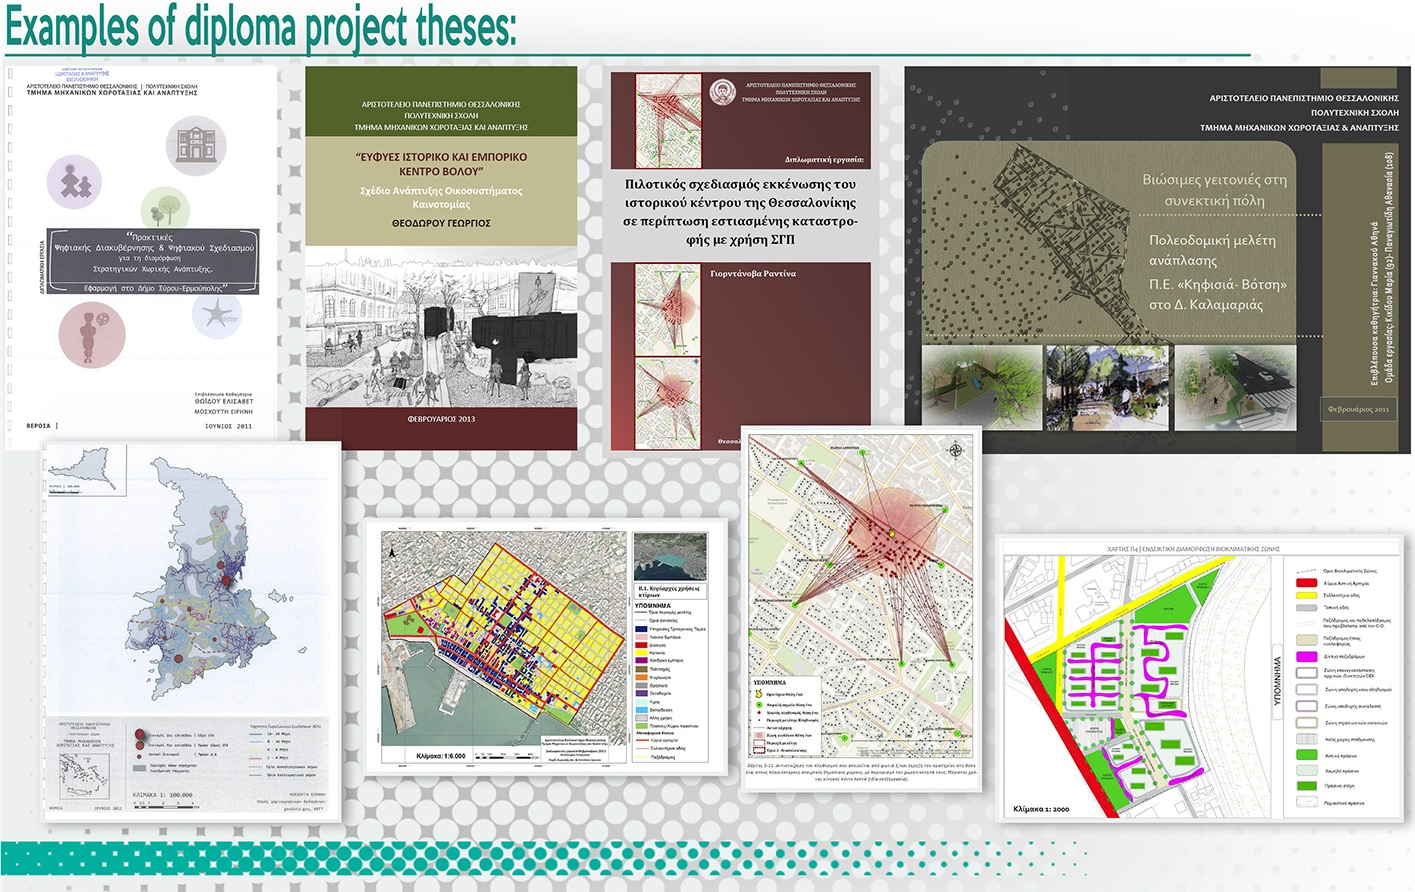 diploma_project_theses.jpg